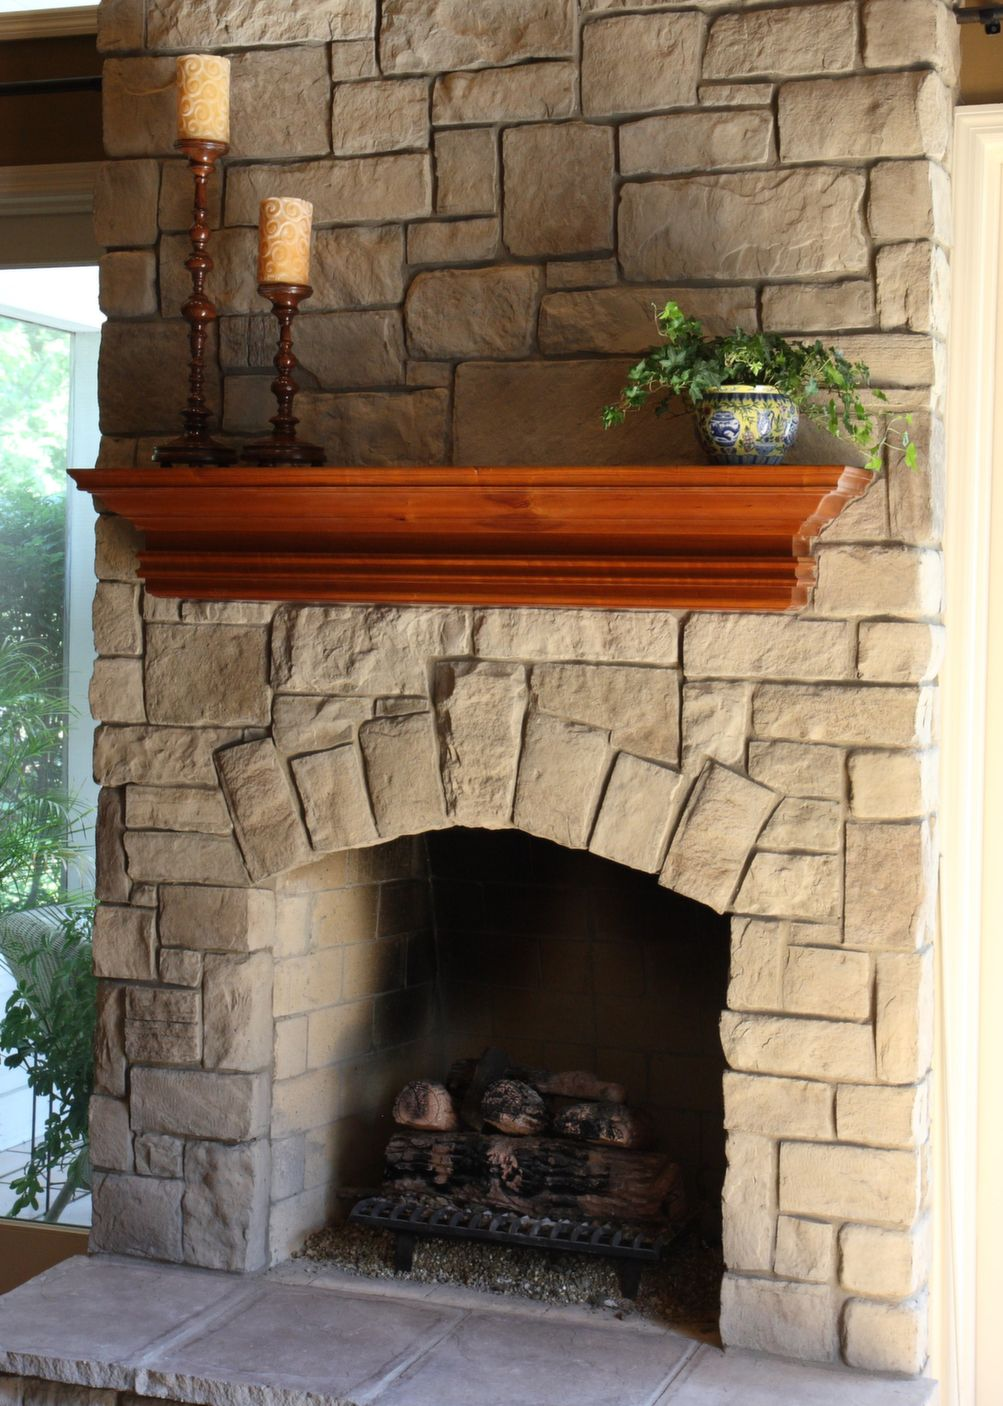 Stone for Fireplace Awesome Stone for Fireplace Fireplace Veneer Stone